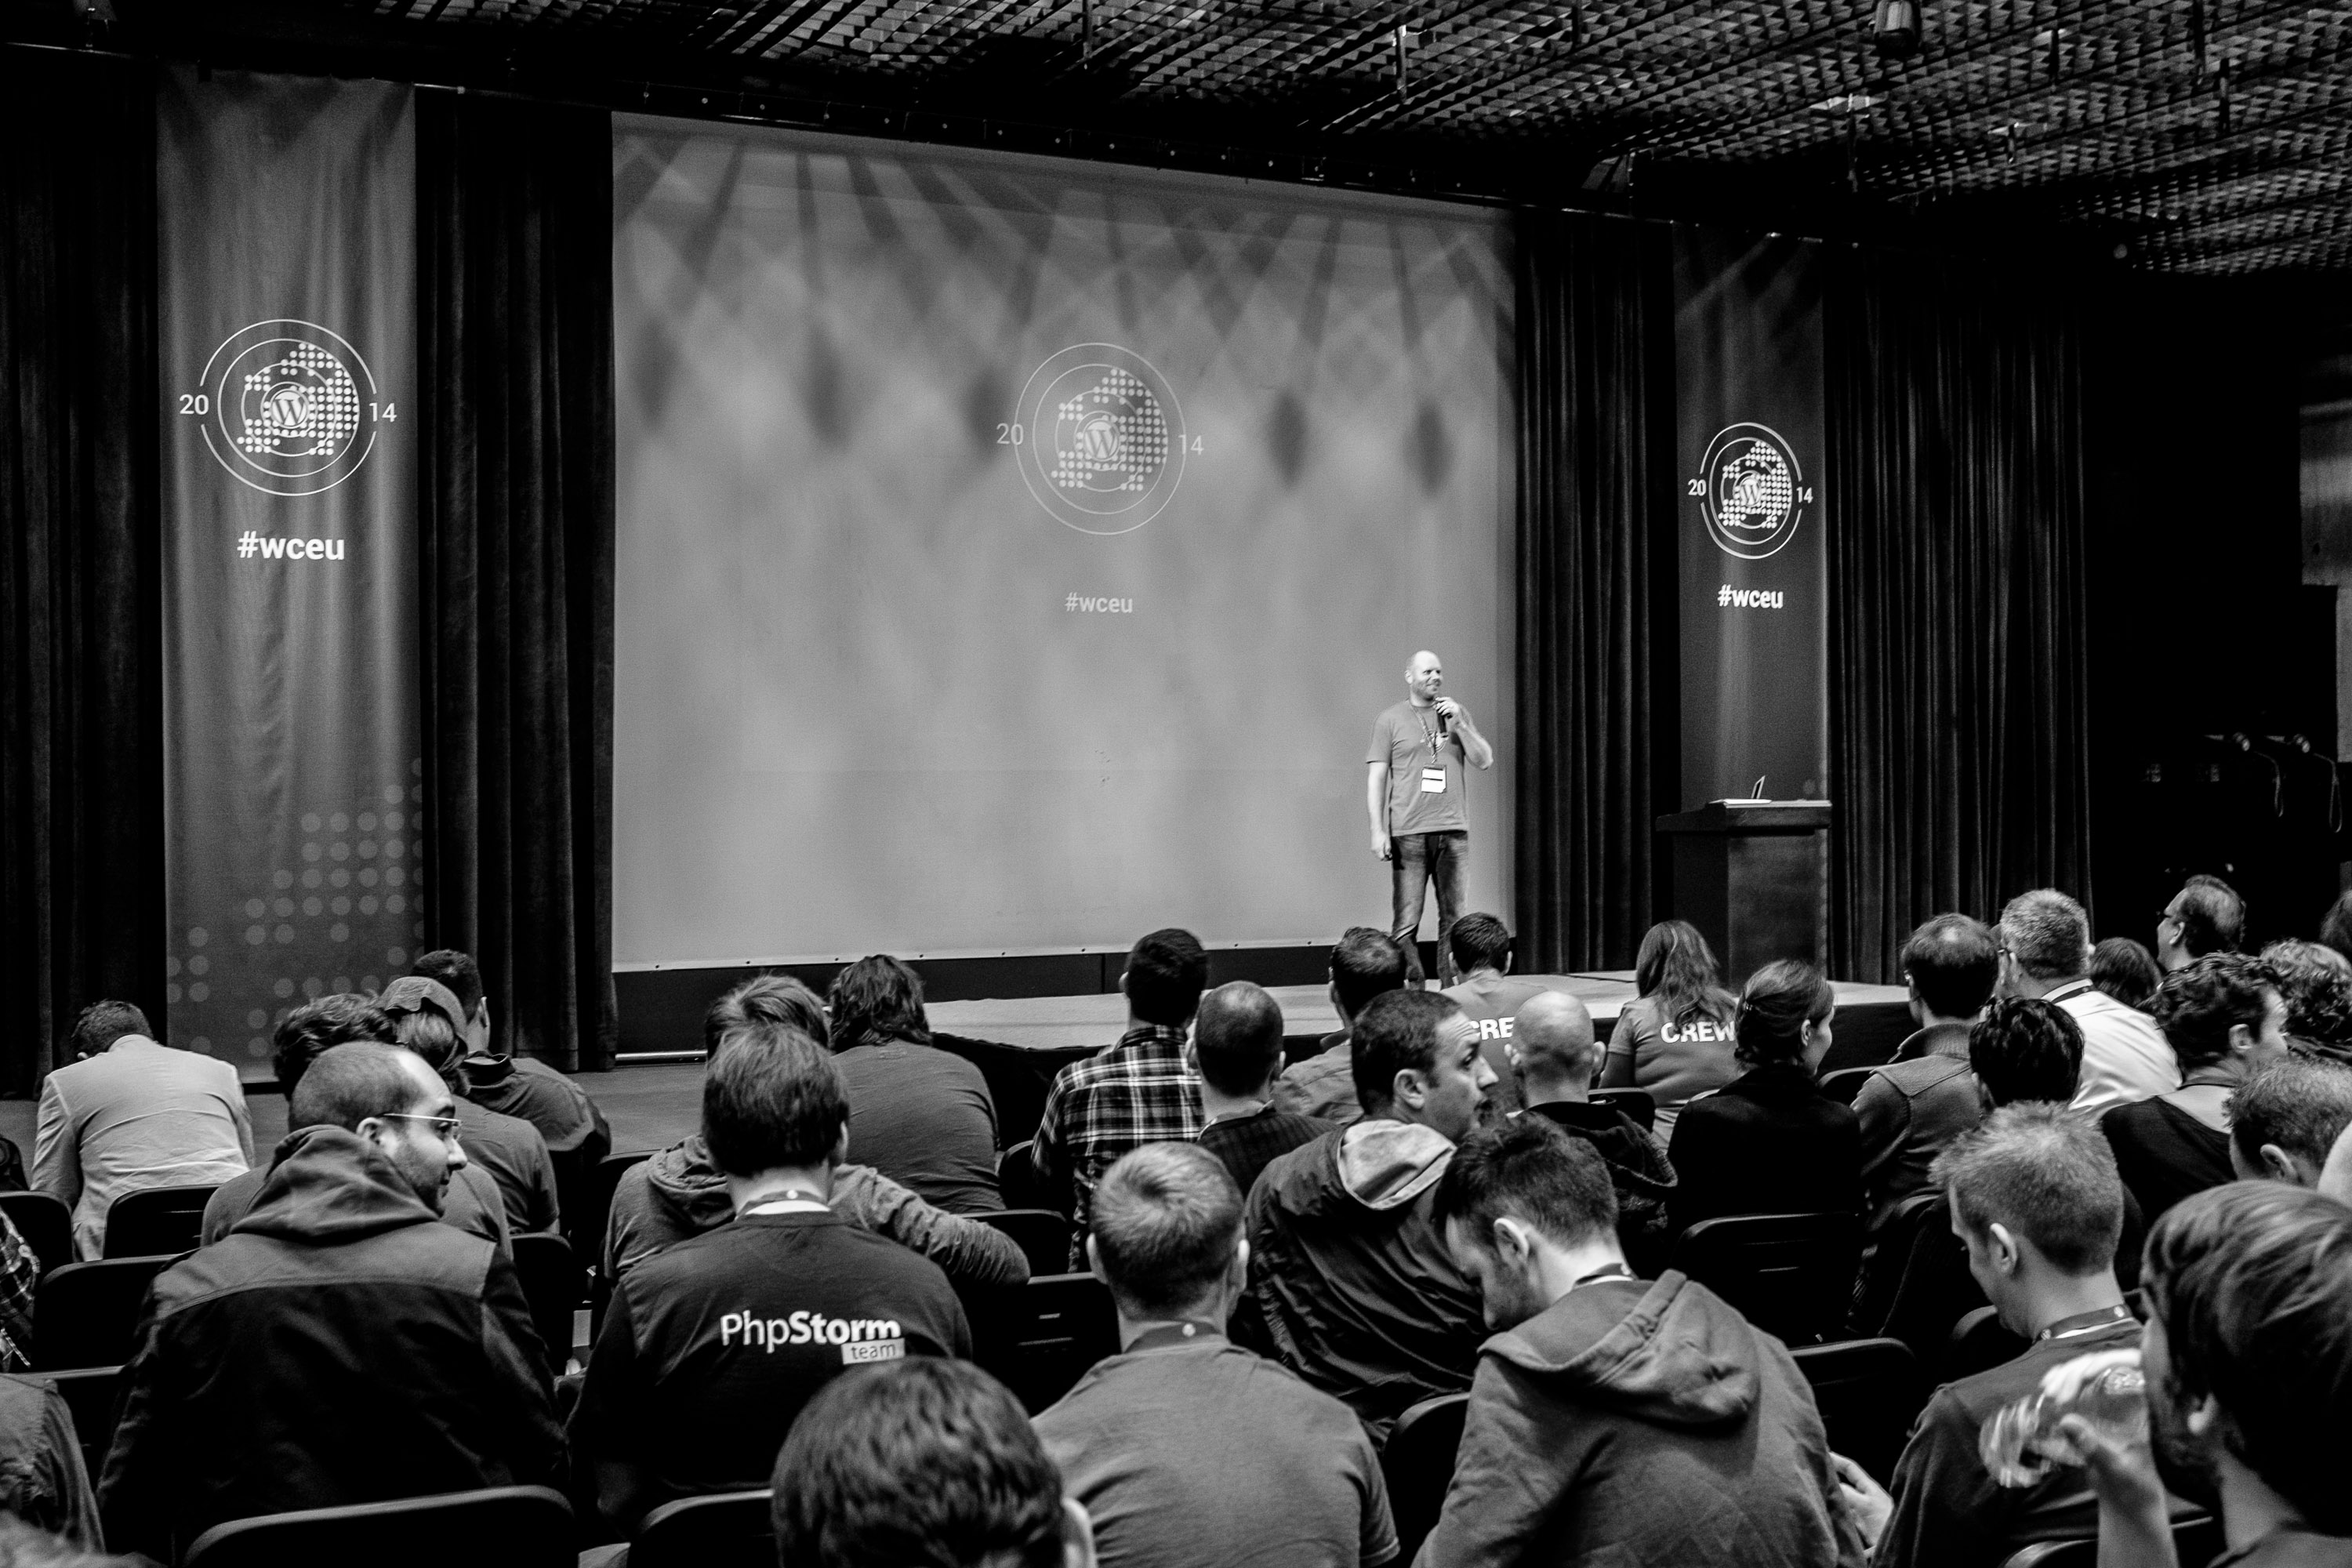 Kick-off for 2014's WordCamp Europe by Remkus de Vries